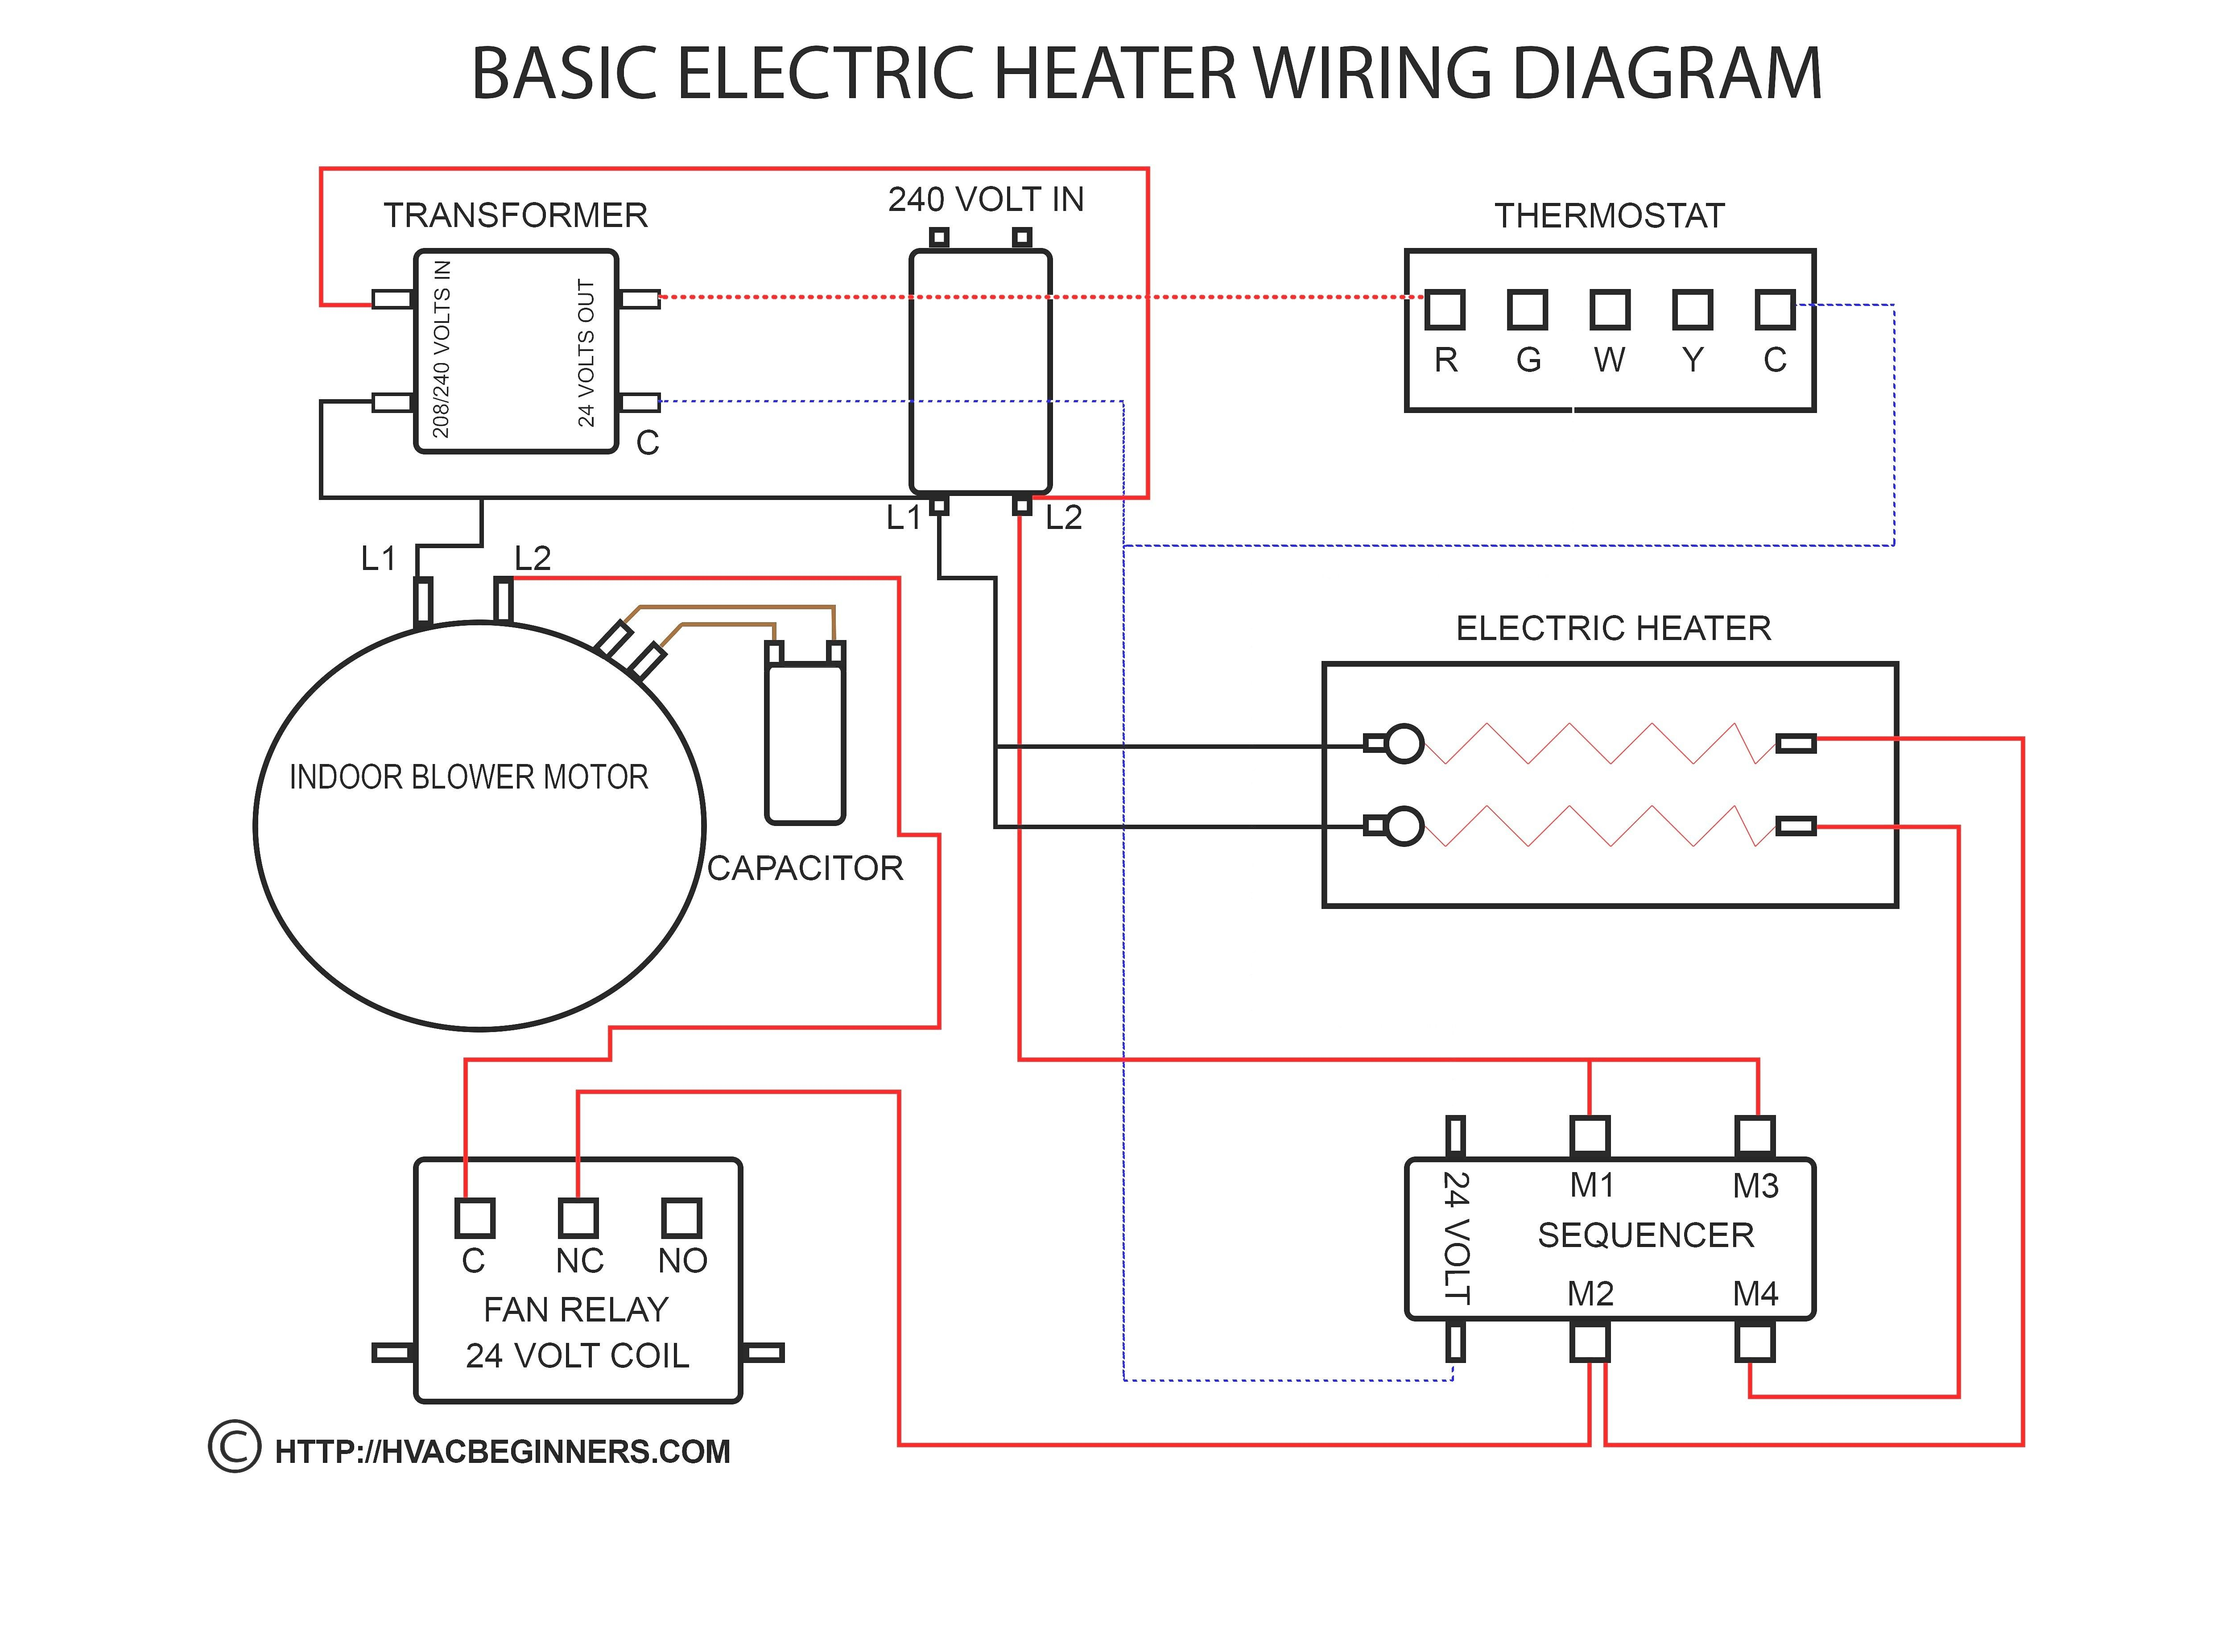 Unique Wiring Circuit Diagram Diagram Wiringdiagram Diagramming Diagramm Visuals Visu Basic Electrical Wiring Thermostat Wiring Electrical Wiring Diagram